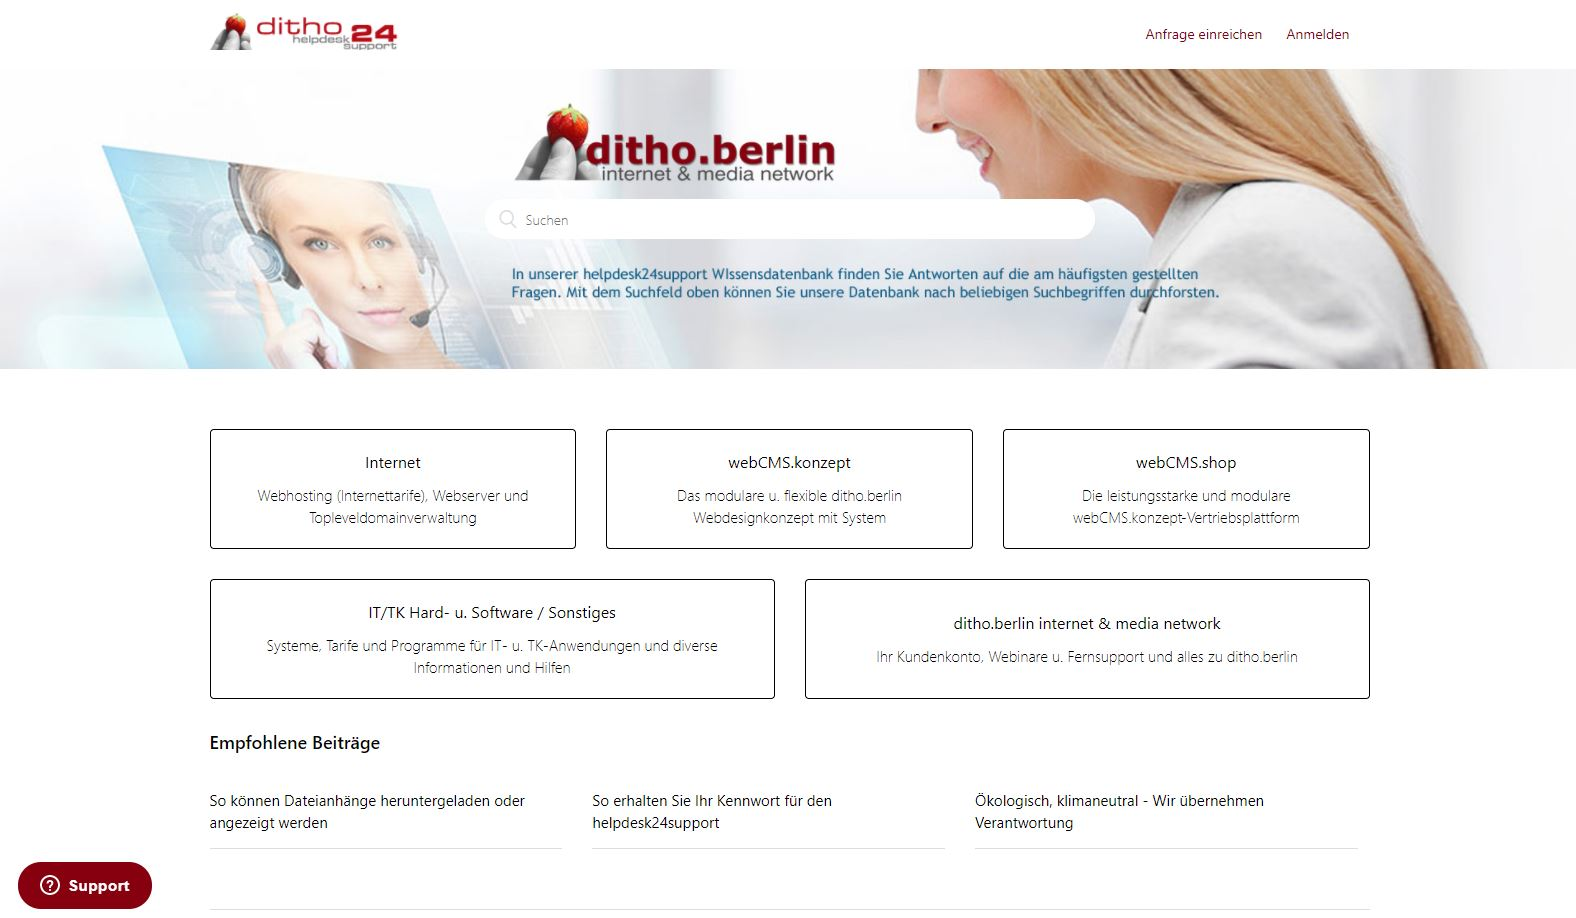 ditho.berlin helpdesk24.support